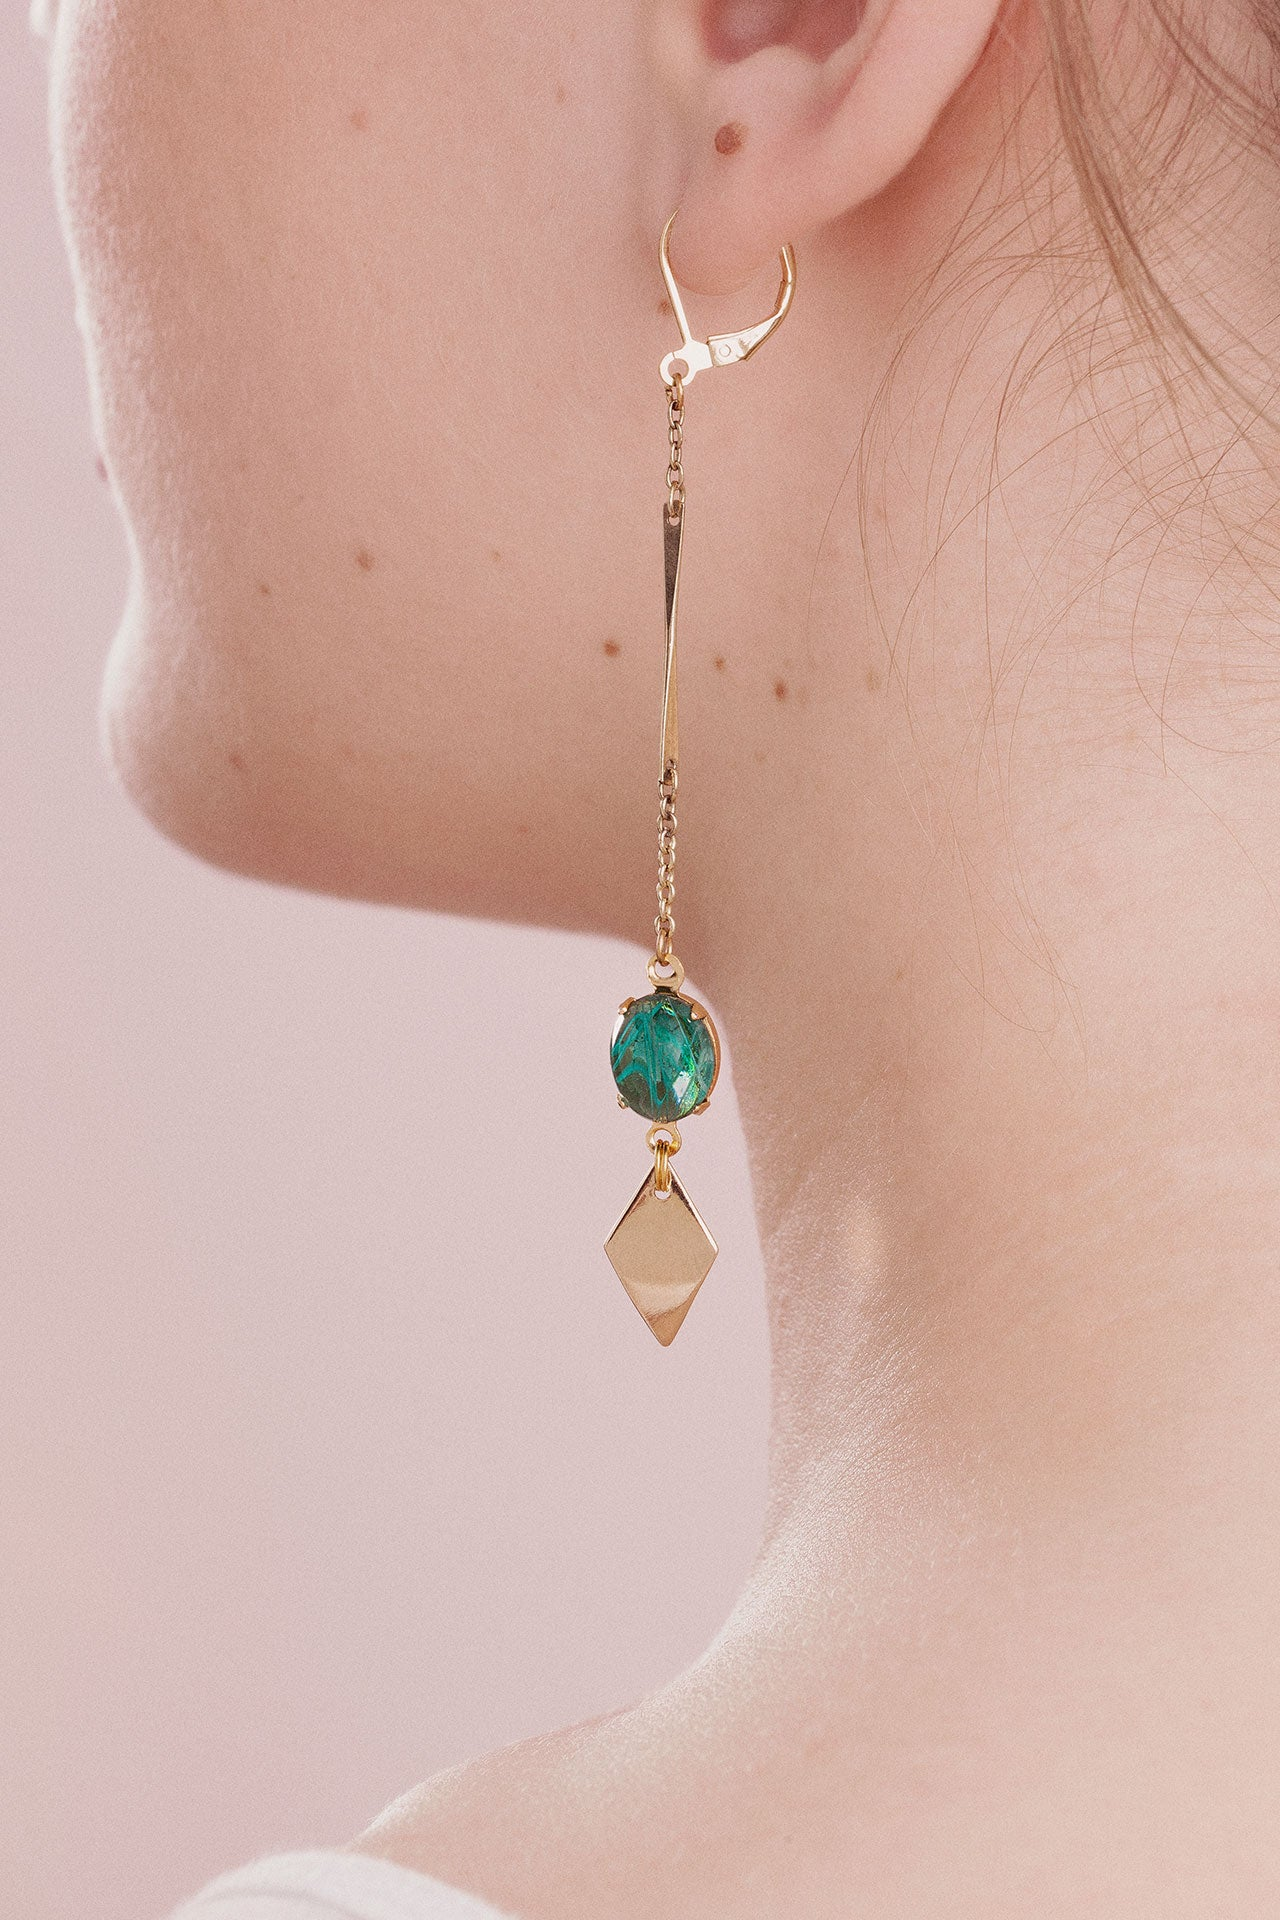 Long green earrings with gold dangles